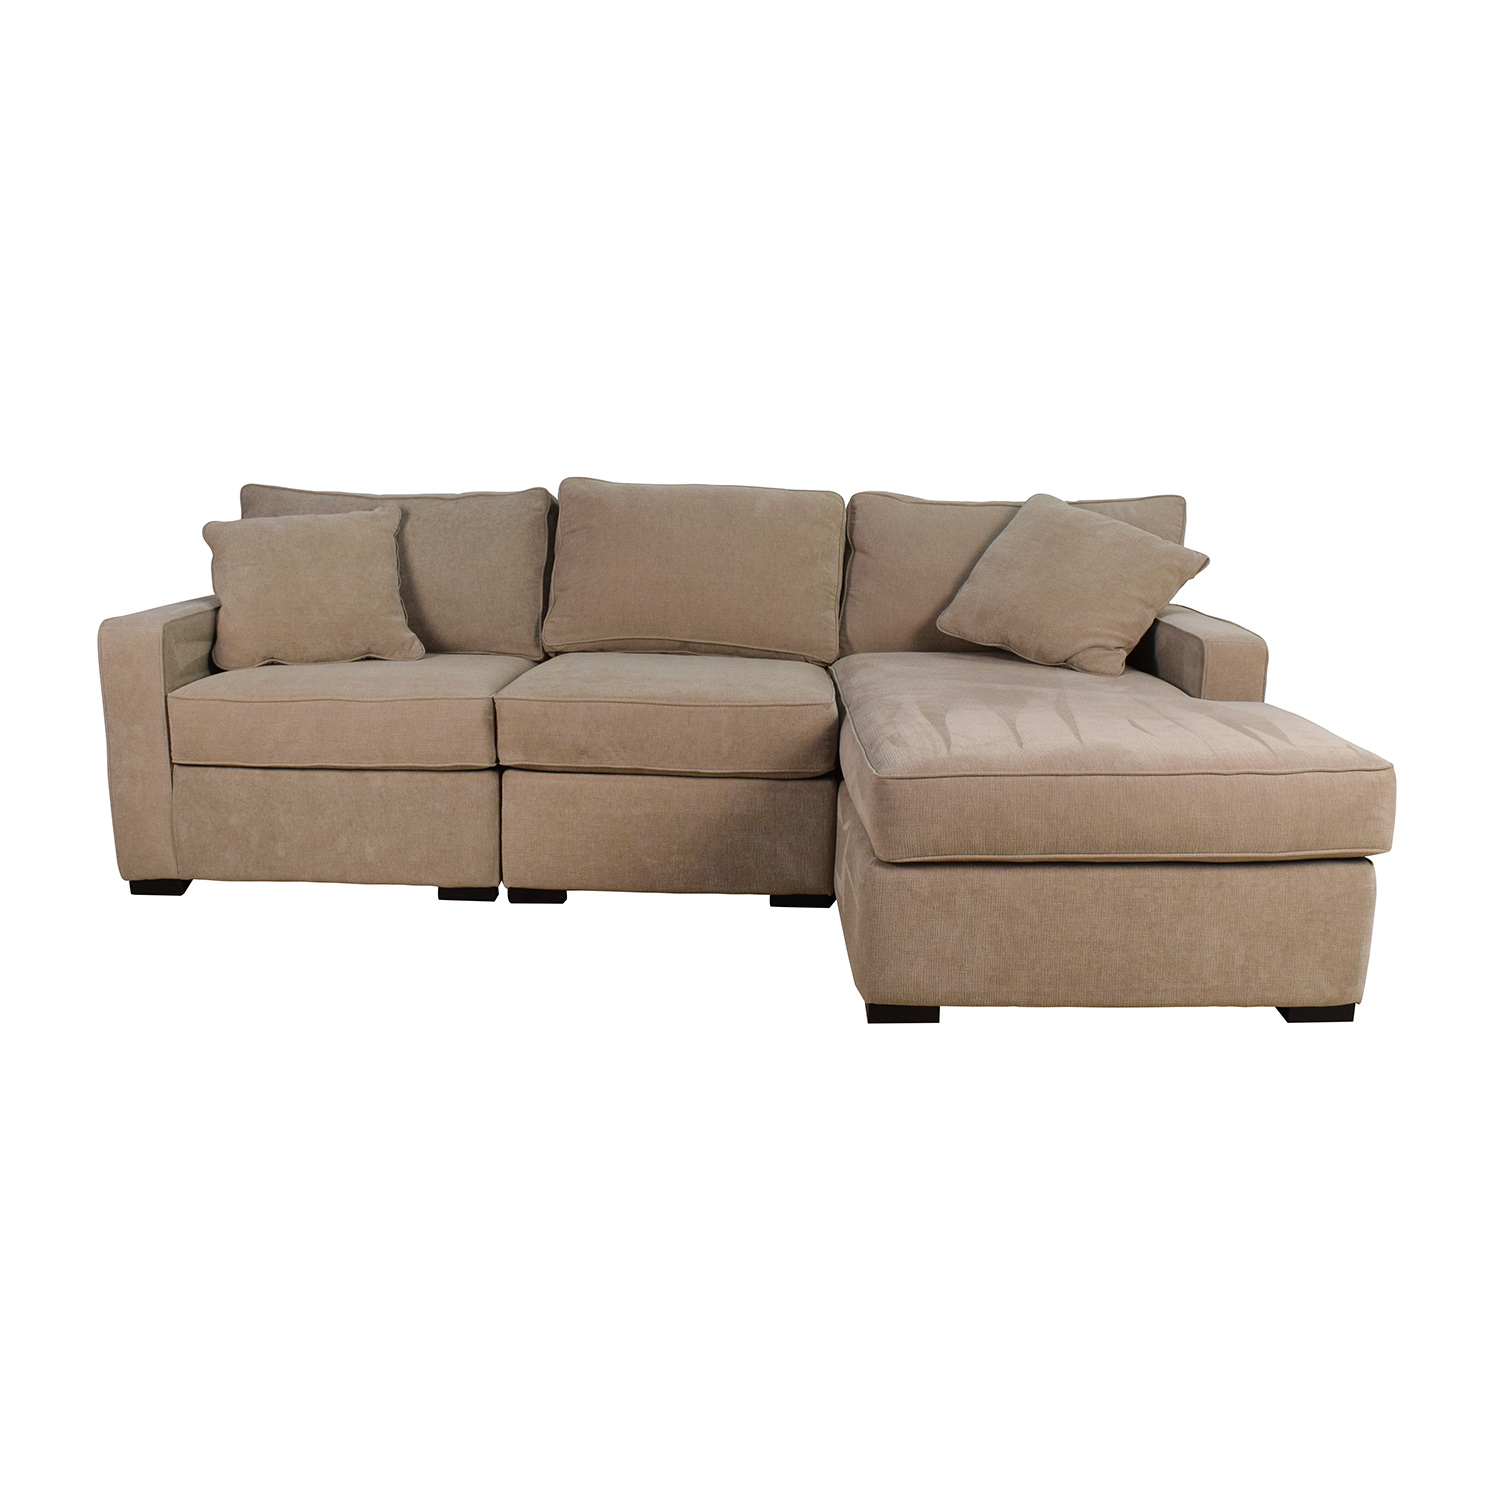 buy Radley 3-Piece Fabric Chaise Sectional Sofa Macys Sofas